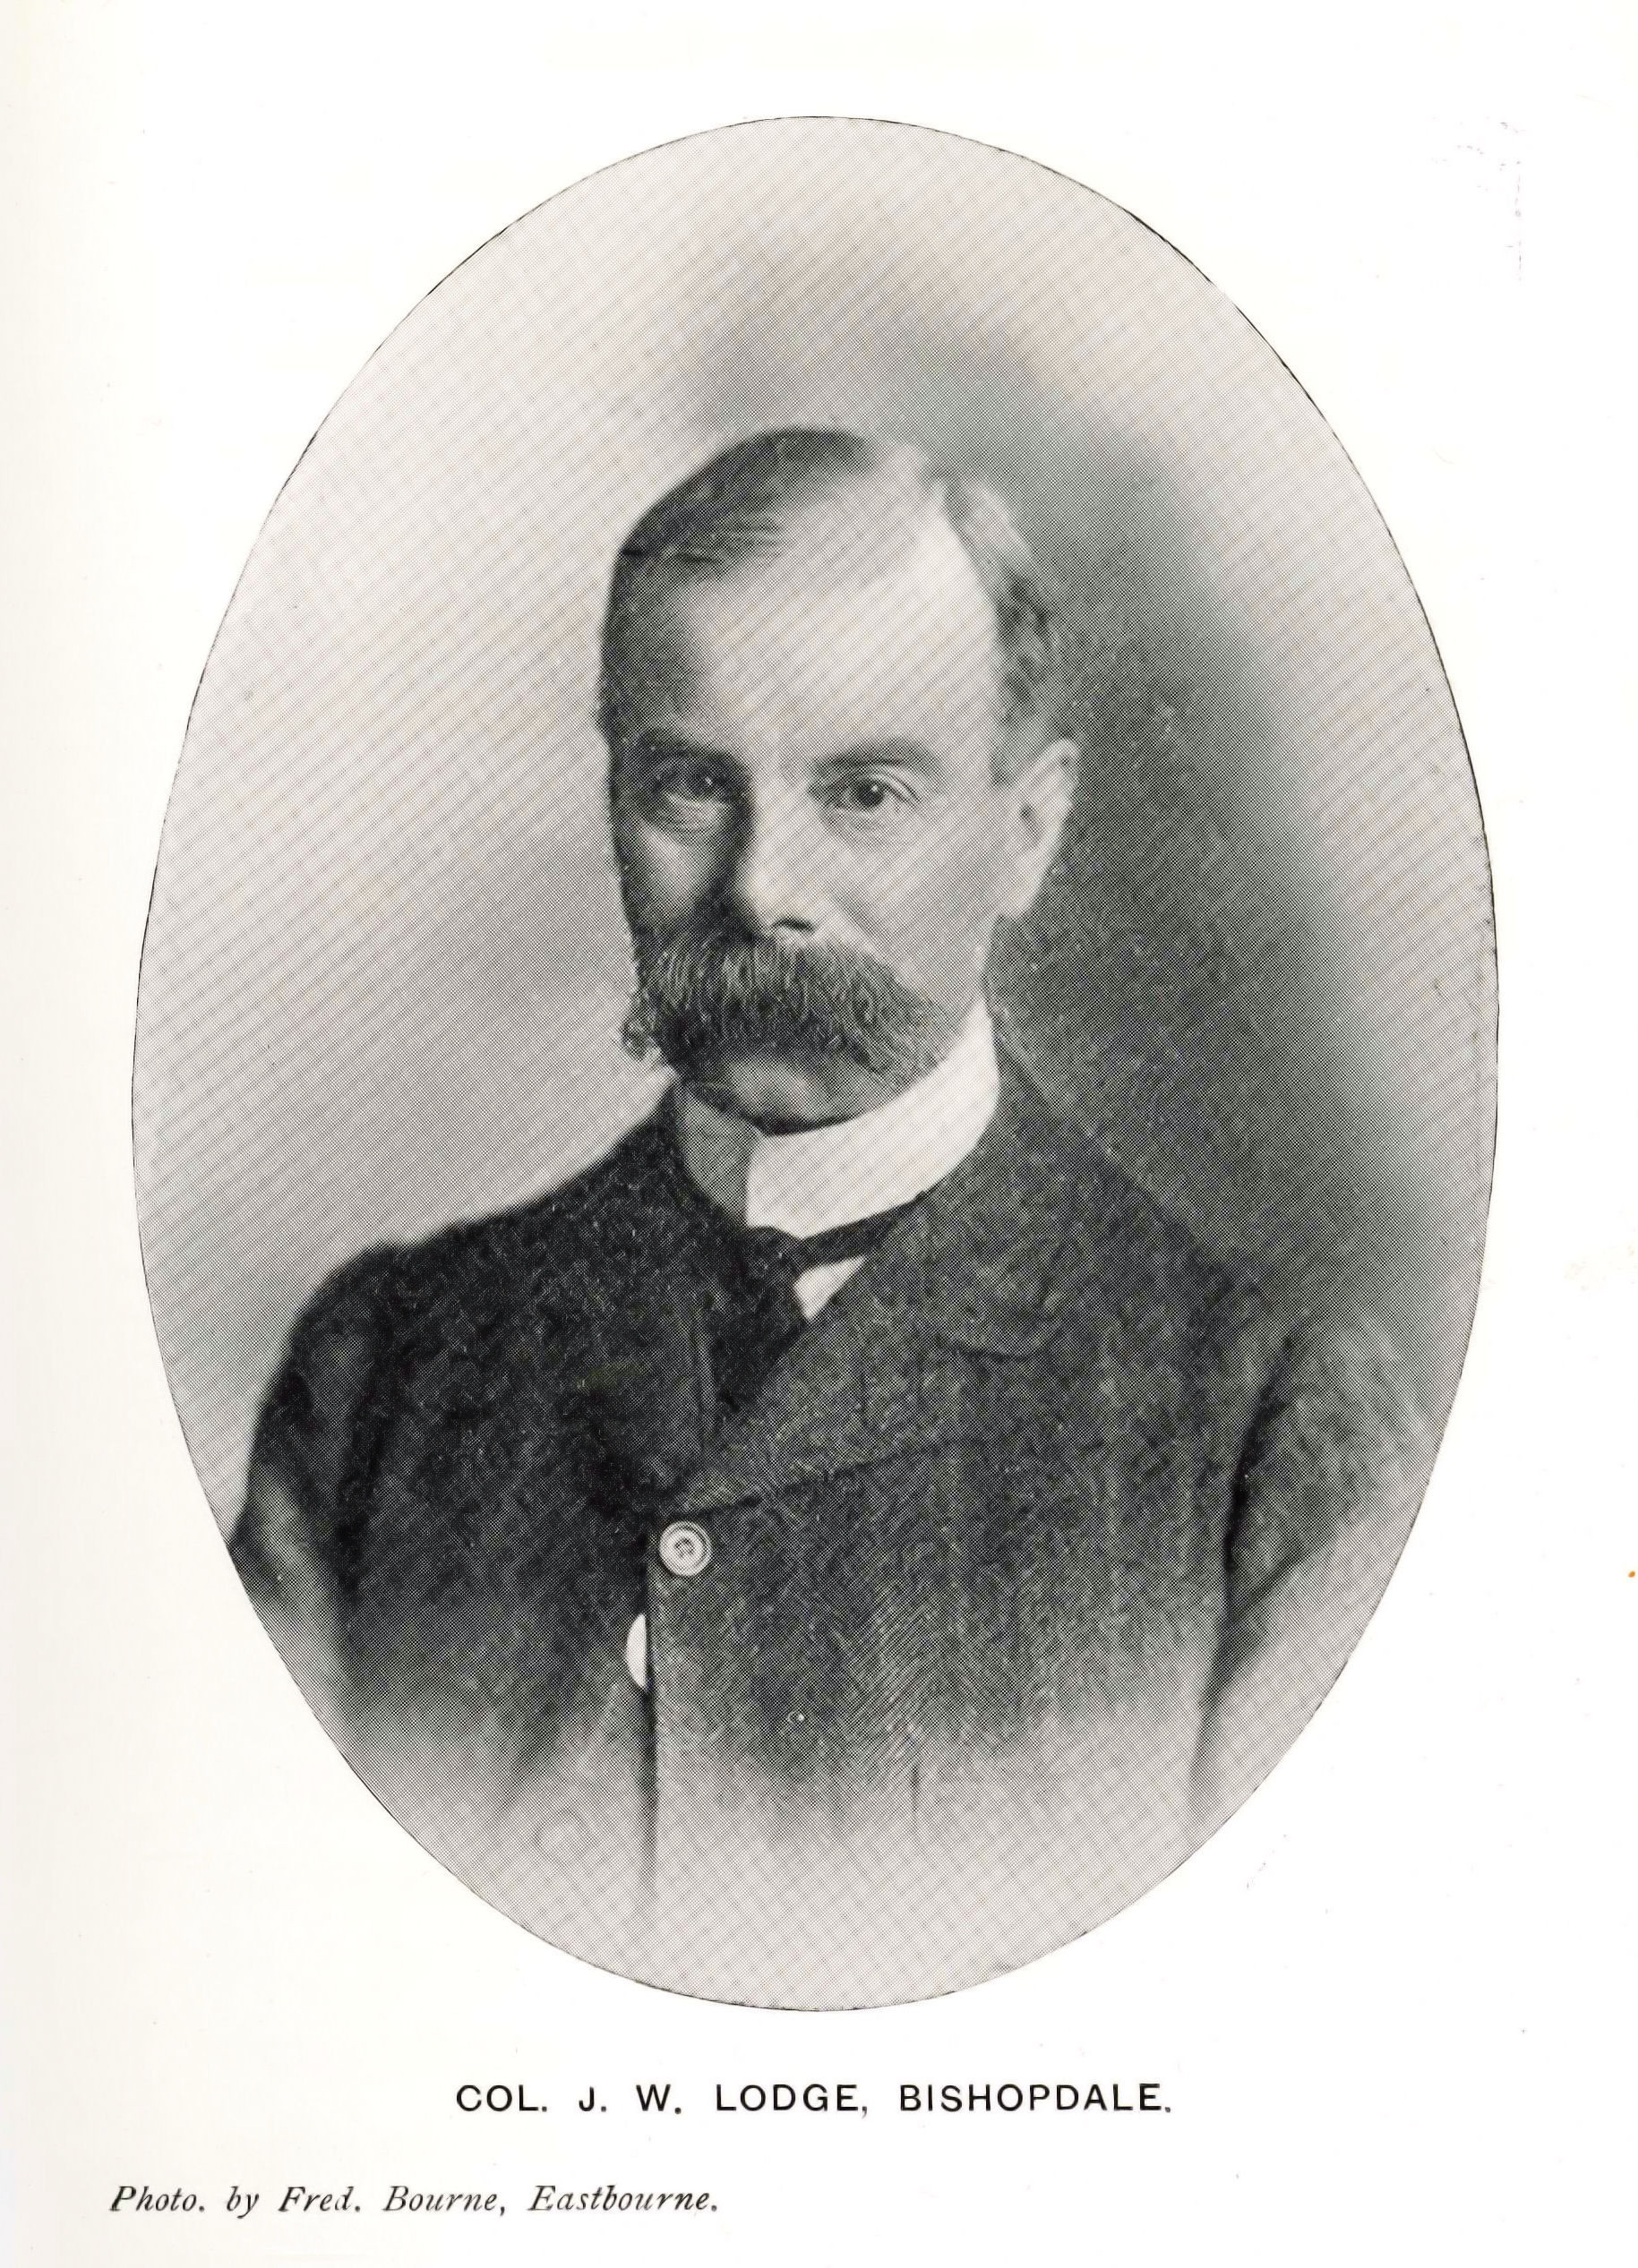 Col. J.W. Lodge, courtesy of The Wensleydale Hounds, 1907 DCM, Hawes